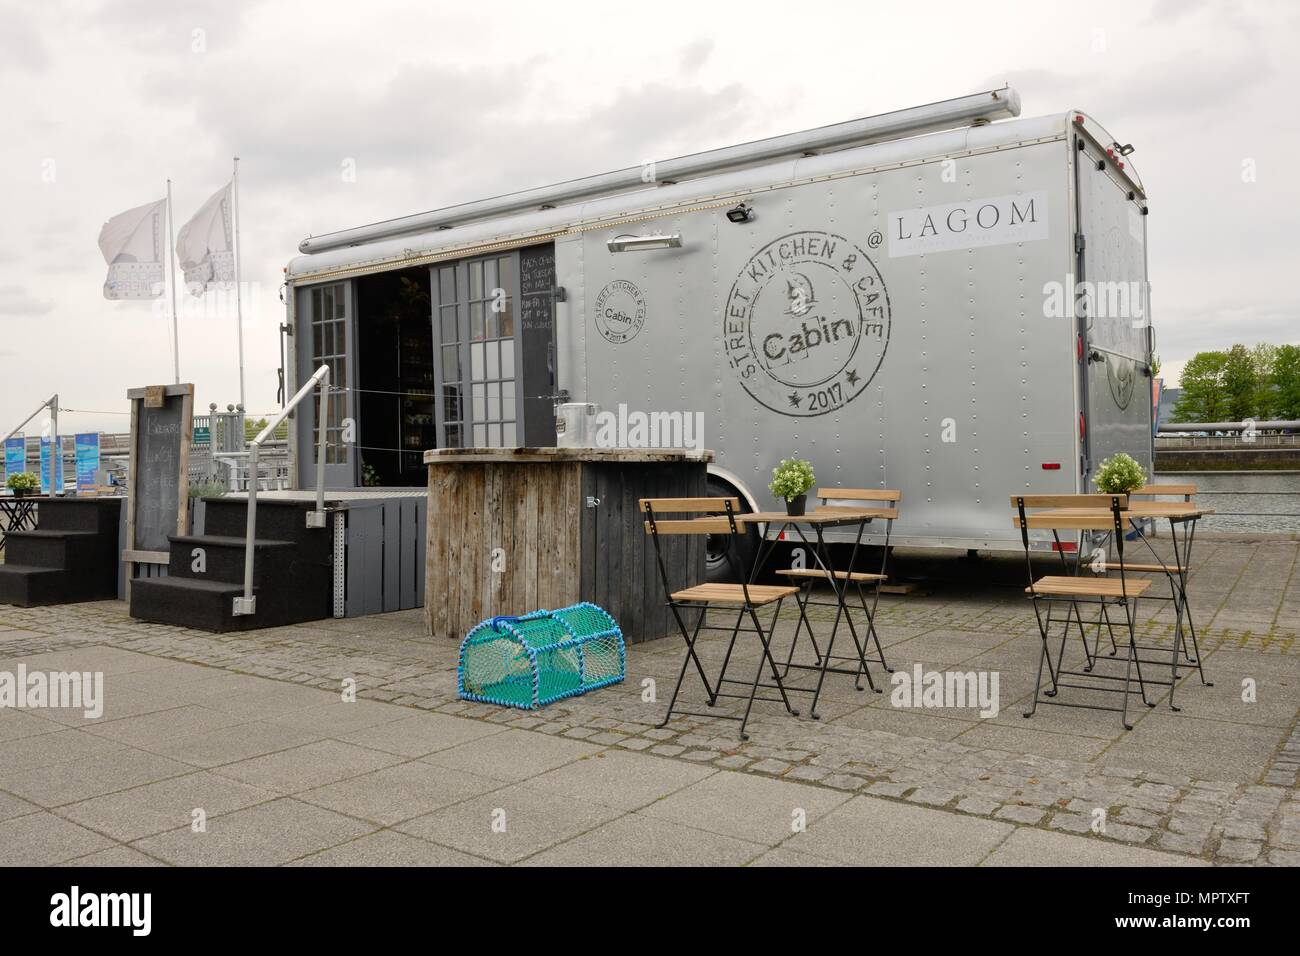 A Lagom Kitchen, Street Kitchen and Cafe Cabin with tables and chairs at Pacific Quay in Glasgow, Scotland, UK - Stock Image